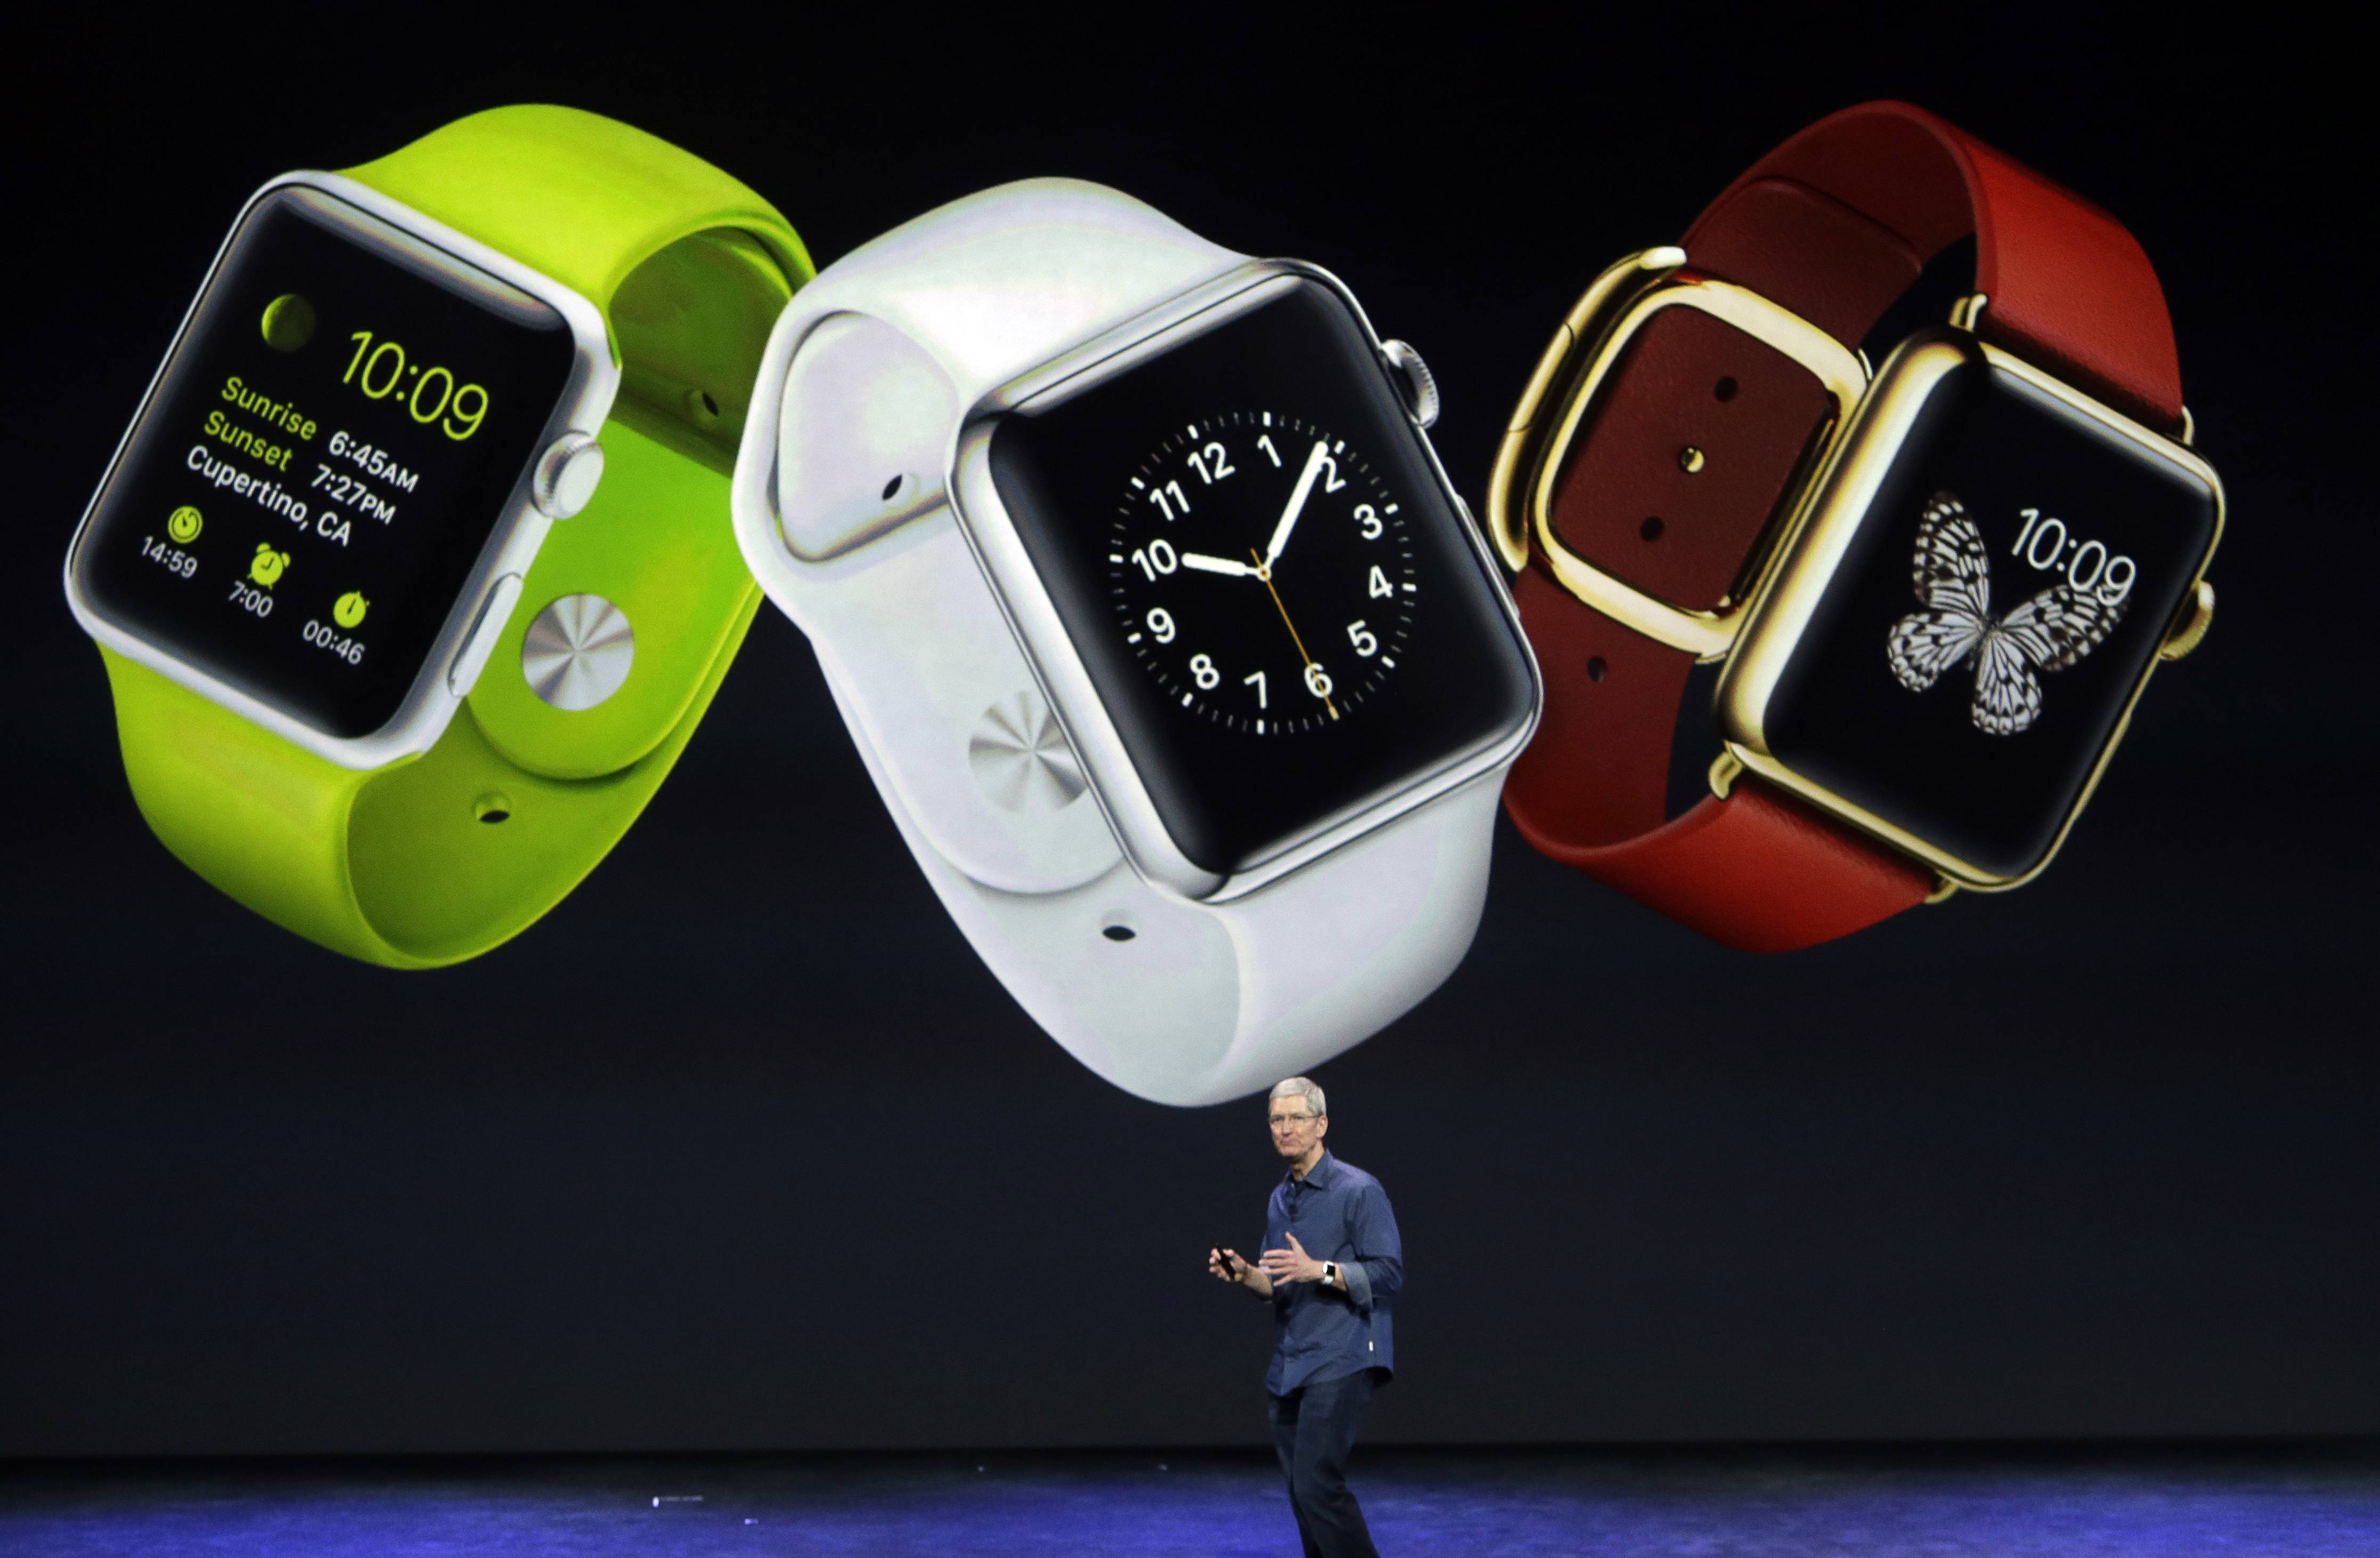 Many wondered if the arrival of the Apple watch would change the look of the company's retail stores. So far, the answer is no.